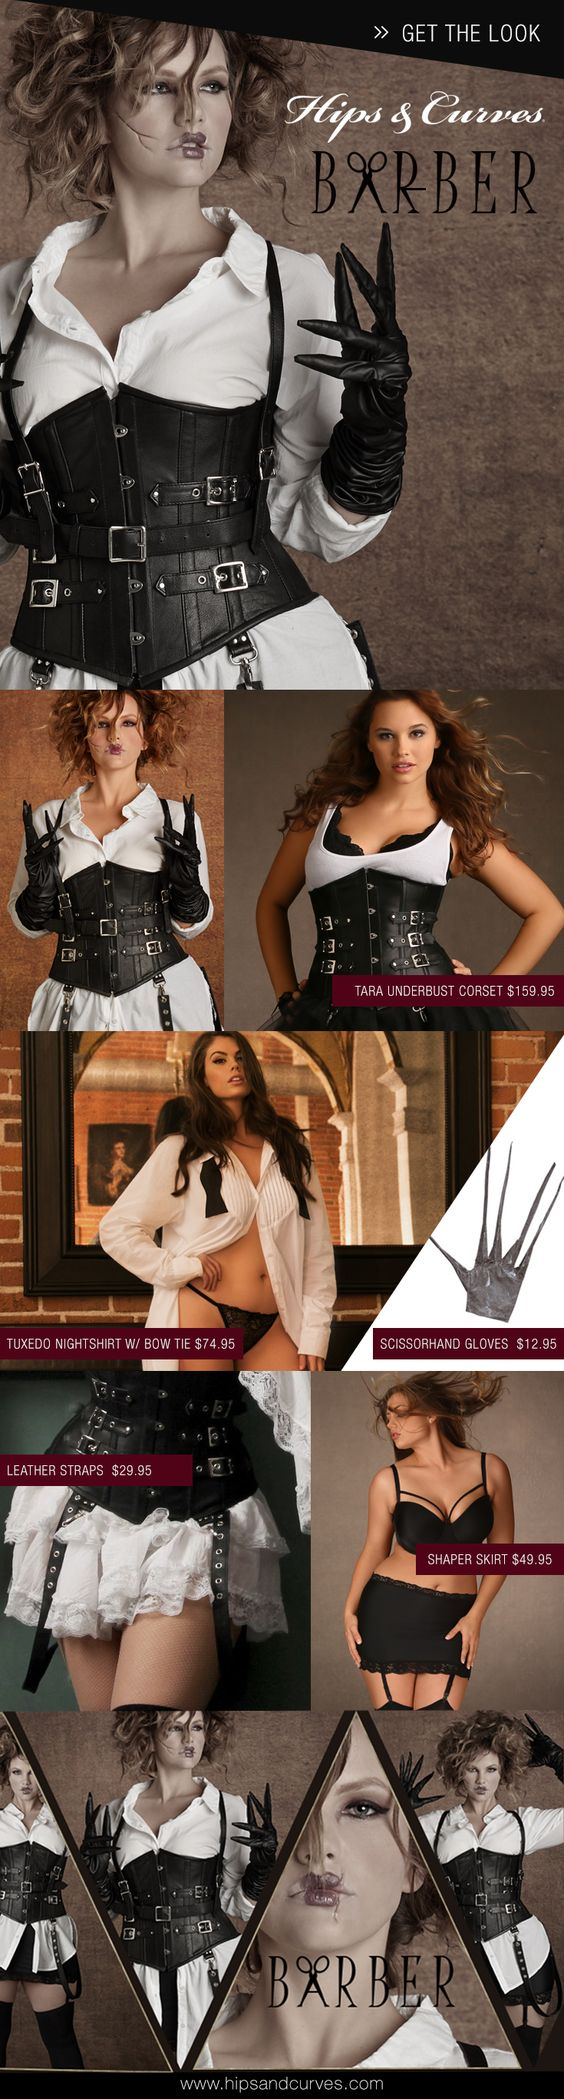 "Looking for a tantalizing and sinister costume idea? Hips and Curves curated ""The Barber"" with our best-selling everyday plus size lingerie. To get this look, we have our plus size Tara Underbust Corset, our plus size Tuxedo night shirt, and our plus size shaper skirt. Don't forget to finish off the look with our scissor hand gloves and draw in the scars with eyeliner. This look will definitely stand you apart from the crowd!"